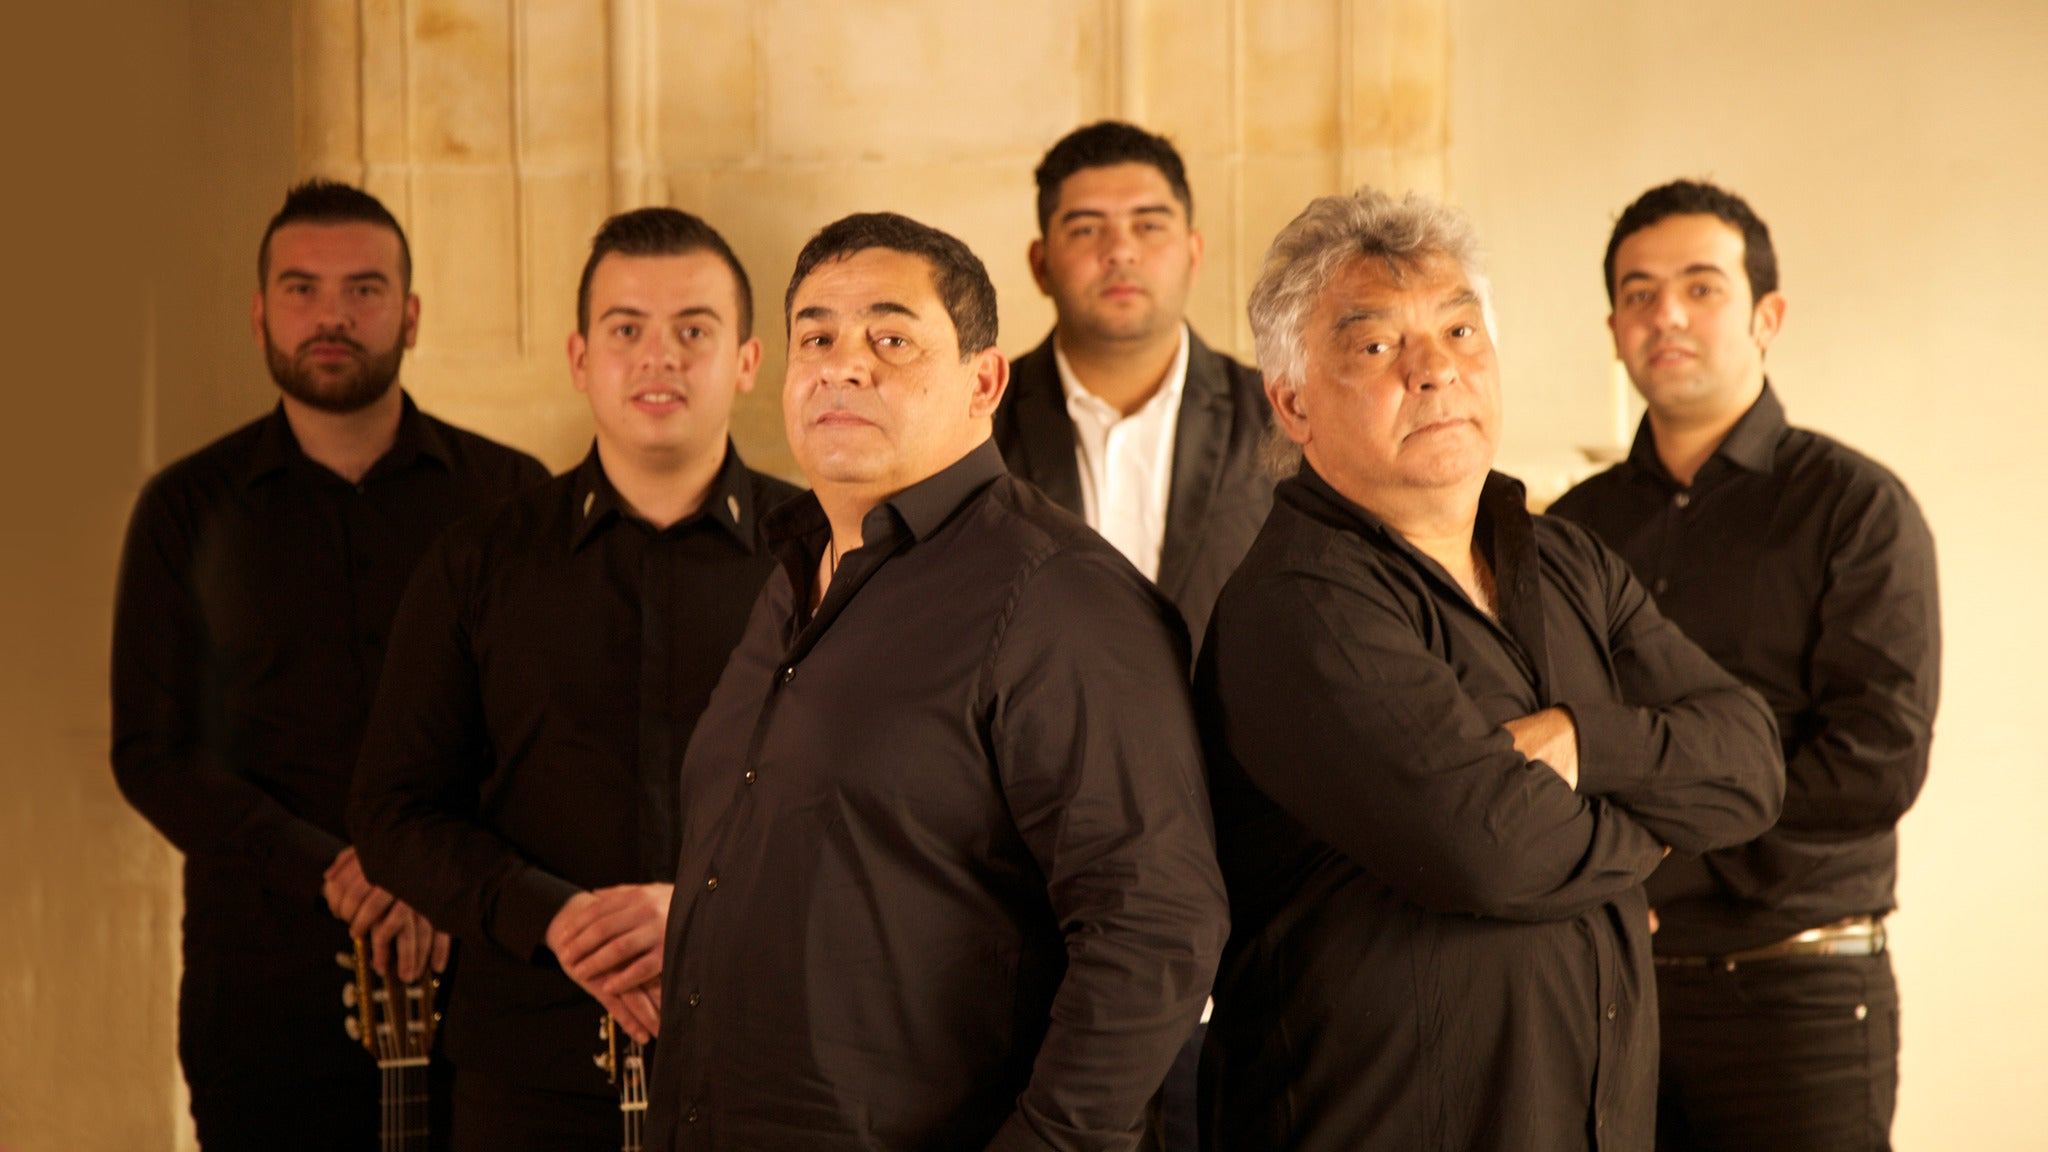 Gipsy Kings at Chautauqua Auditorium